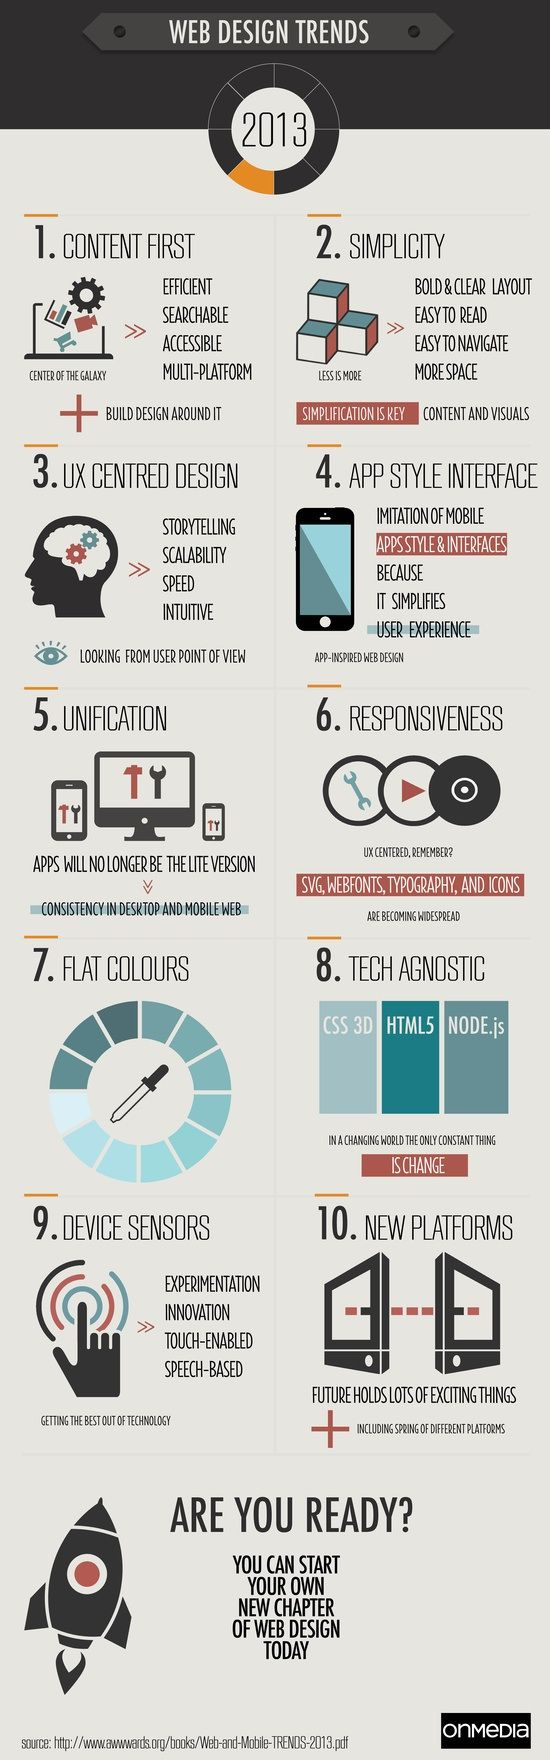 Weekly Infographic: Web Design Trends for 2013